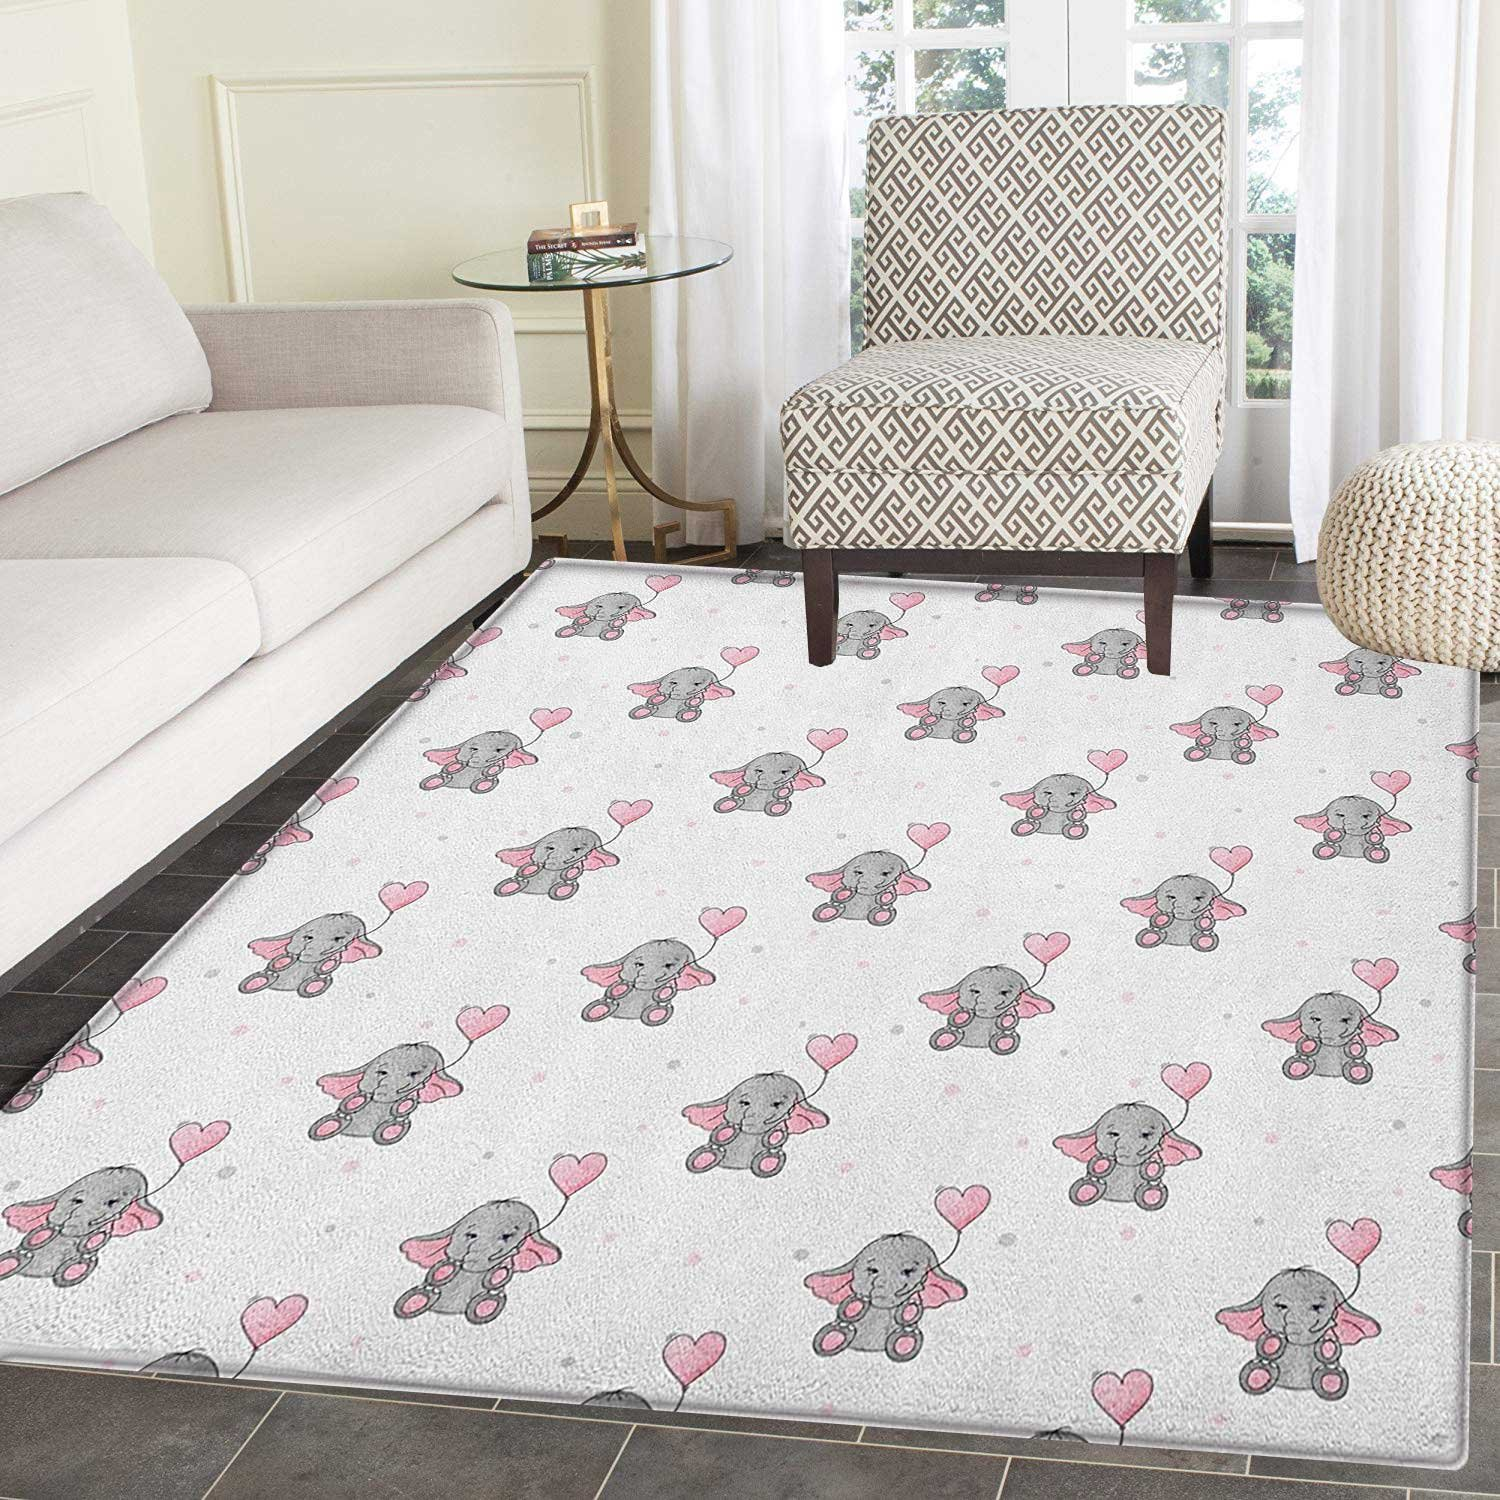 Rug on carpet nursery Contemporary Elephant Nursery Area Rug Carpet Elephants Holding Heart Shaped Pink Balloons Girlish Design Living Dining Room Bedroom Hallway Office Carpet 5x6 Grey Amazoncom Amazoncom Elephant Nursery Area Rug Carpet Elephants Holding Heart